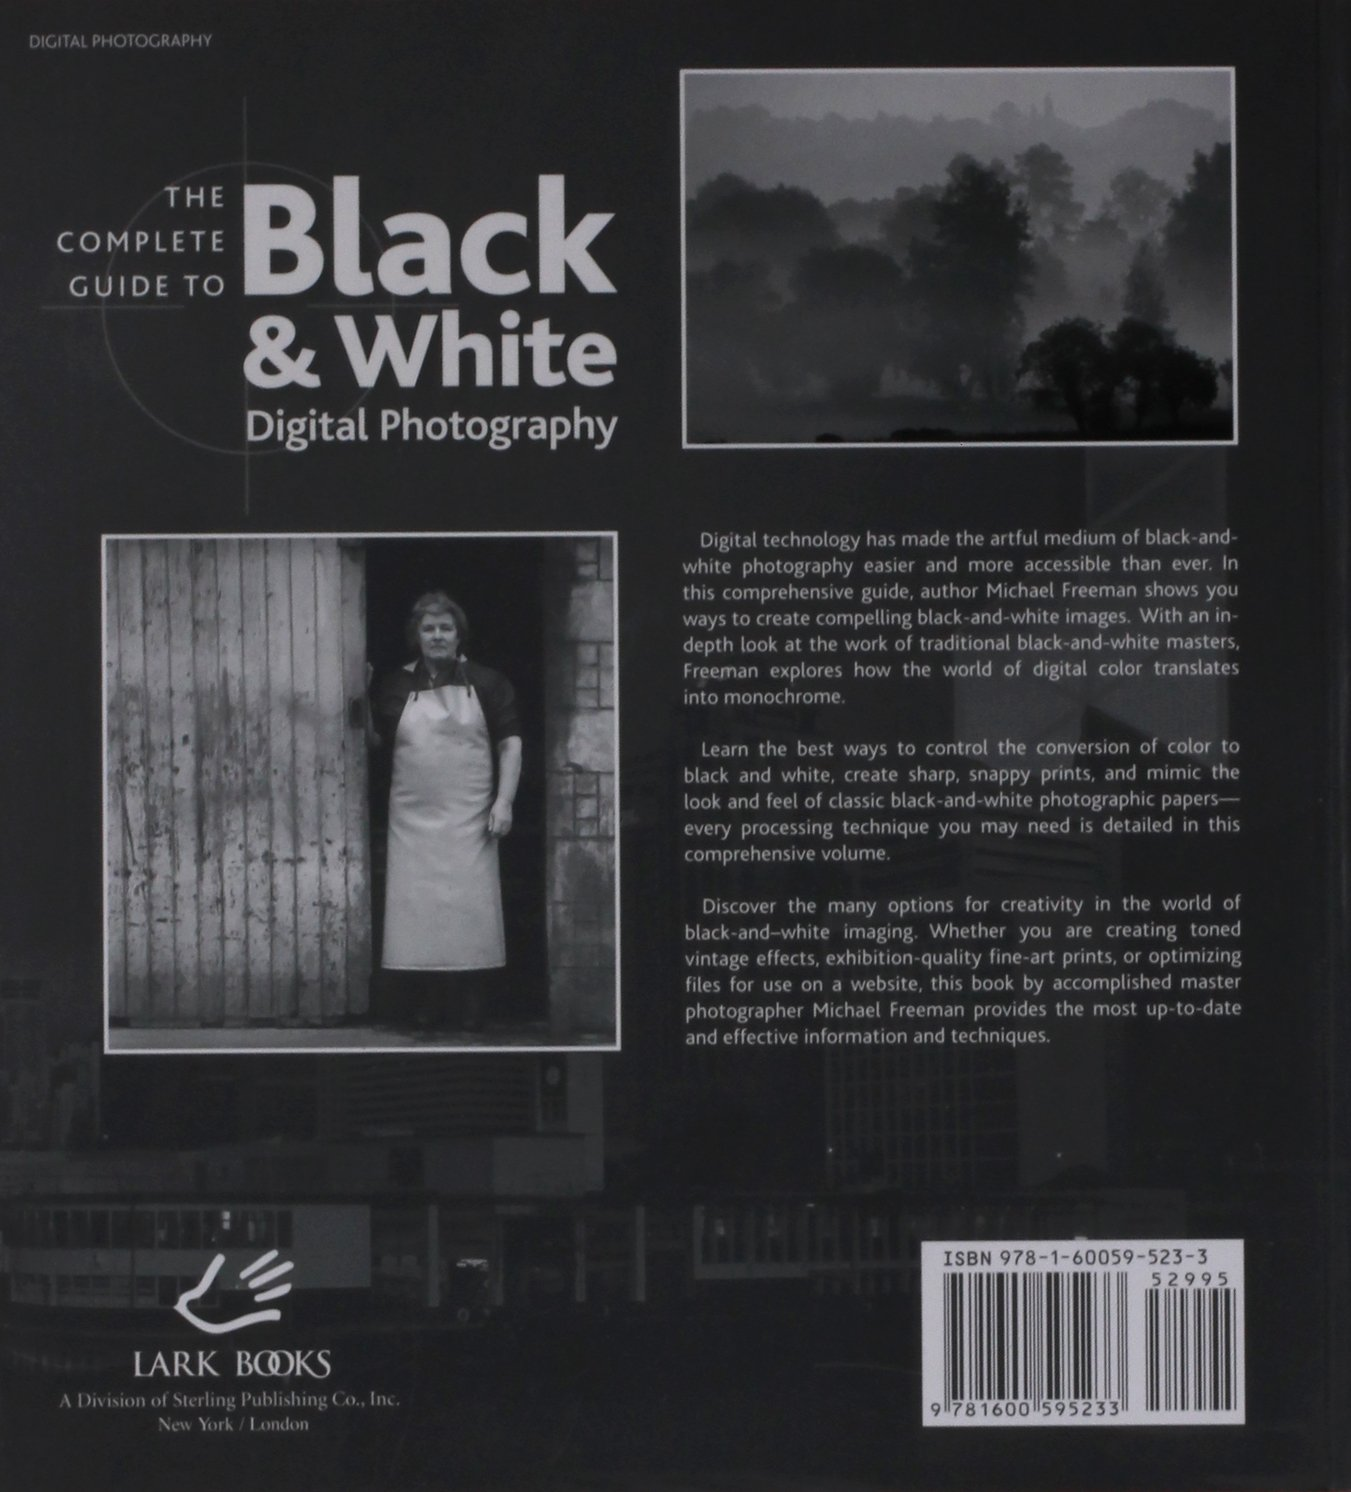 The complete guide to black white digital photography a lark photography book michael freeman 9781600595233 amazon com books